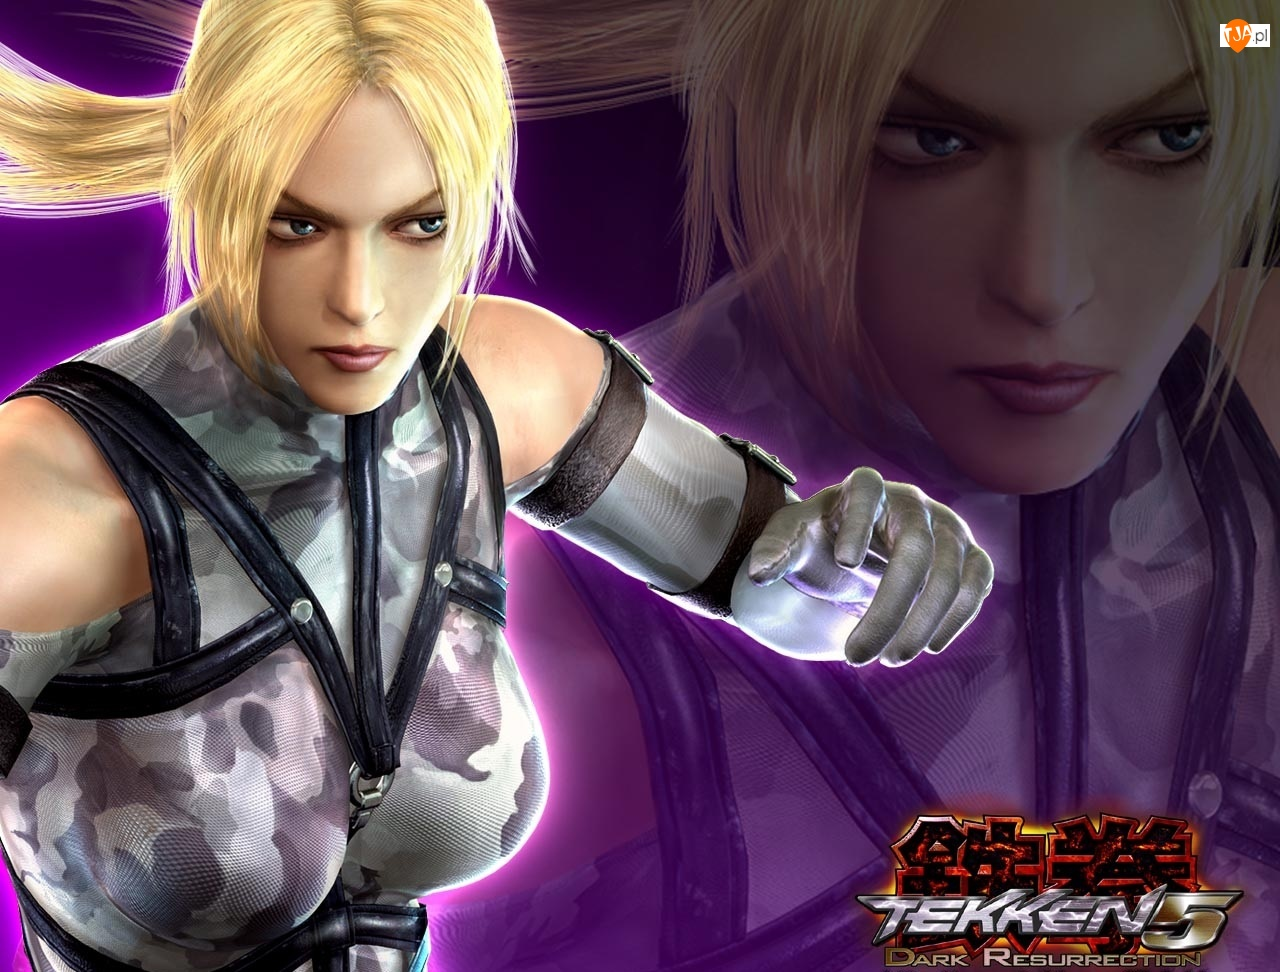 Nina Williams, Tekken 5 Dark Ressurection